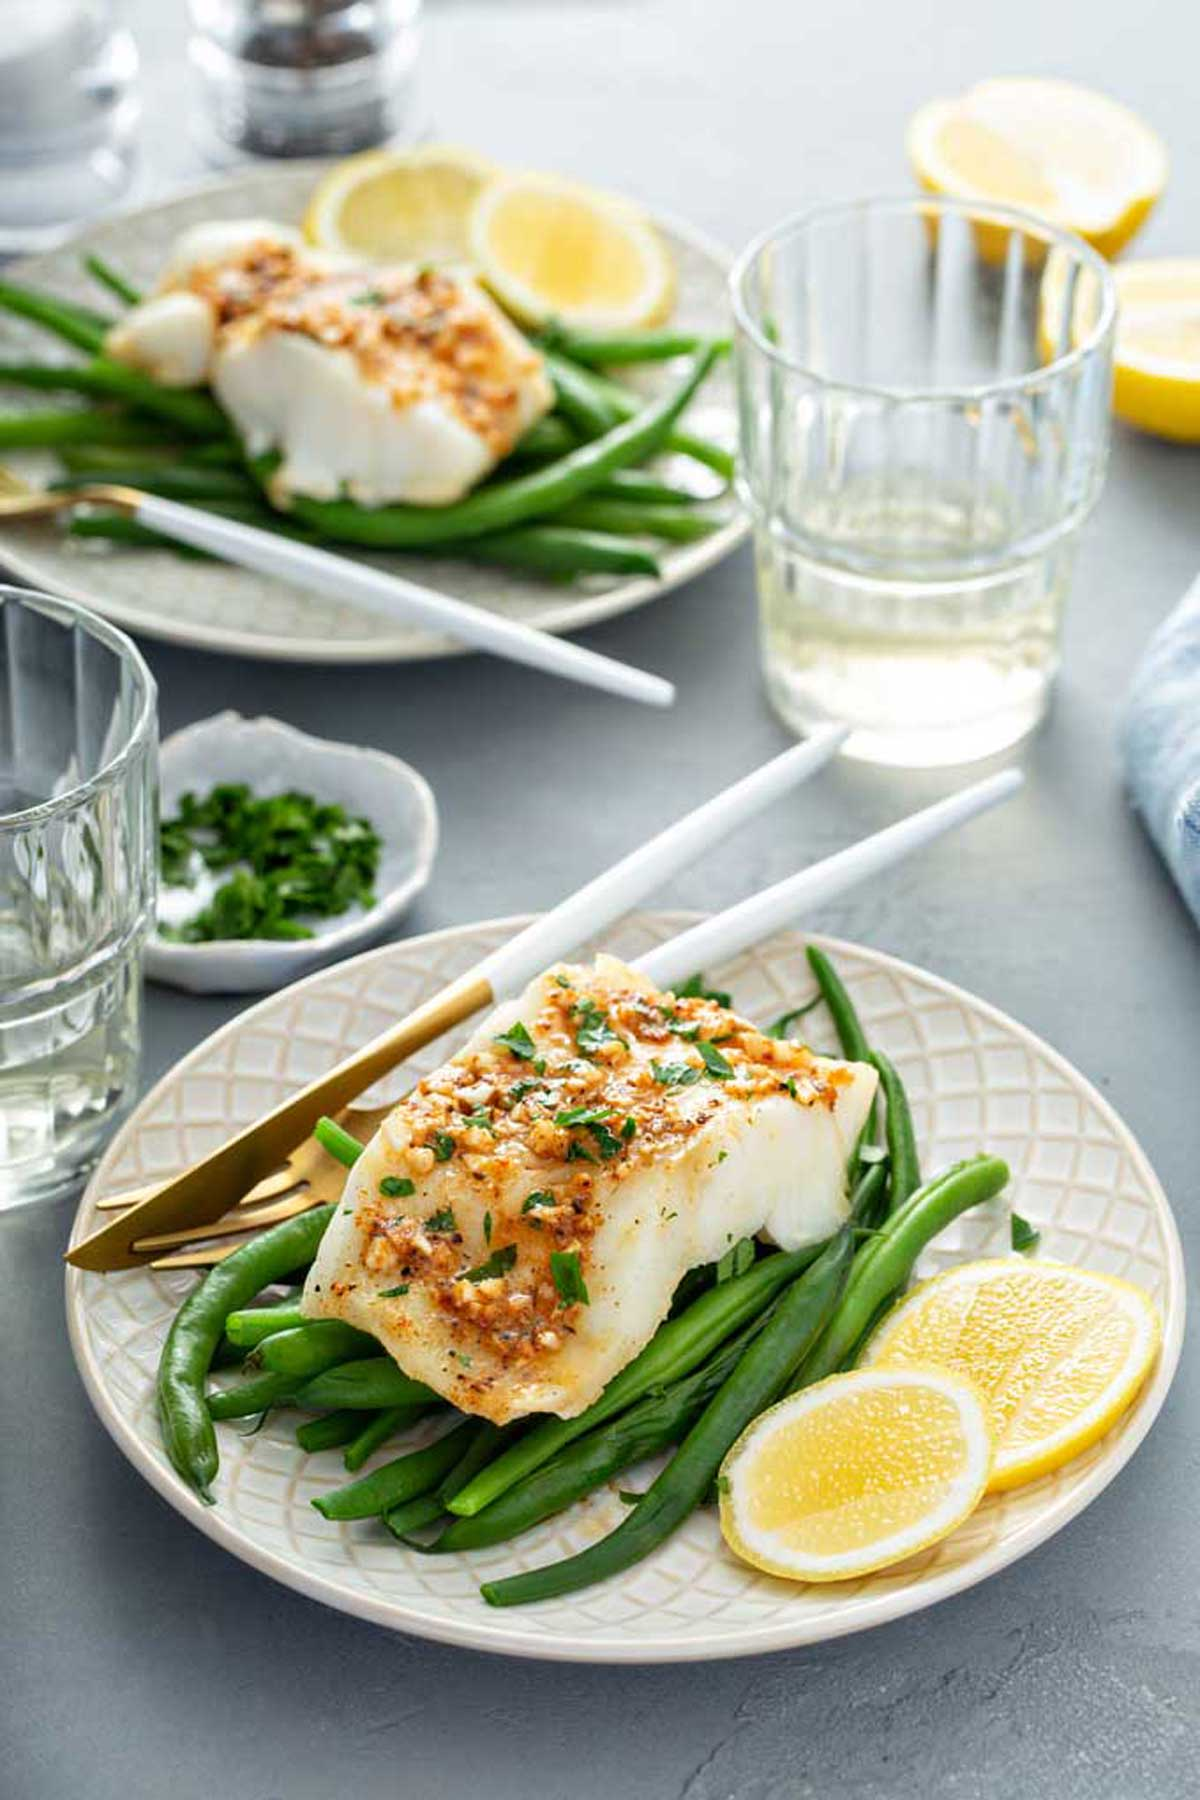 Baked fish cod served with green beans and lemon slices on an ivory plate